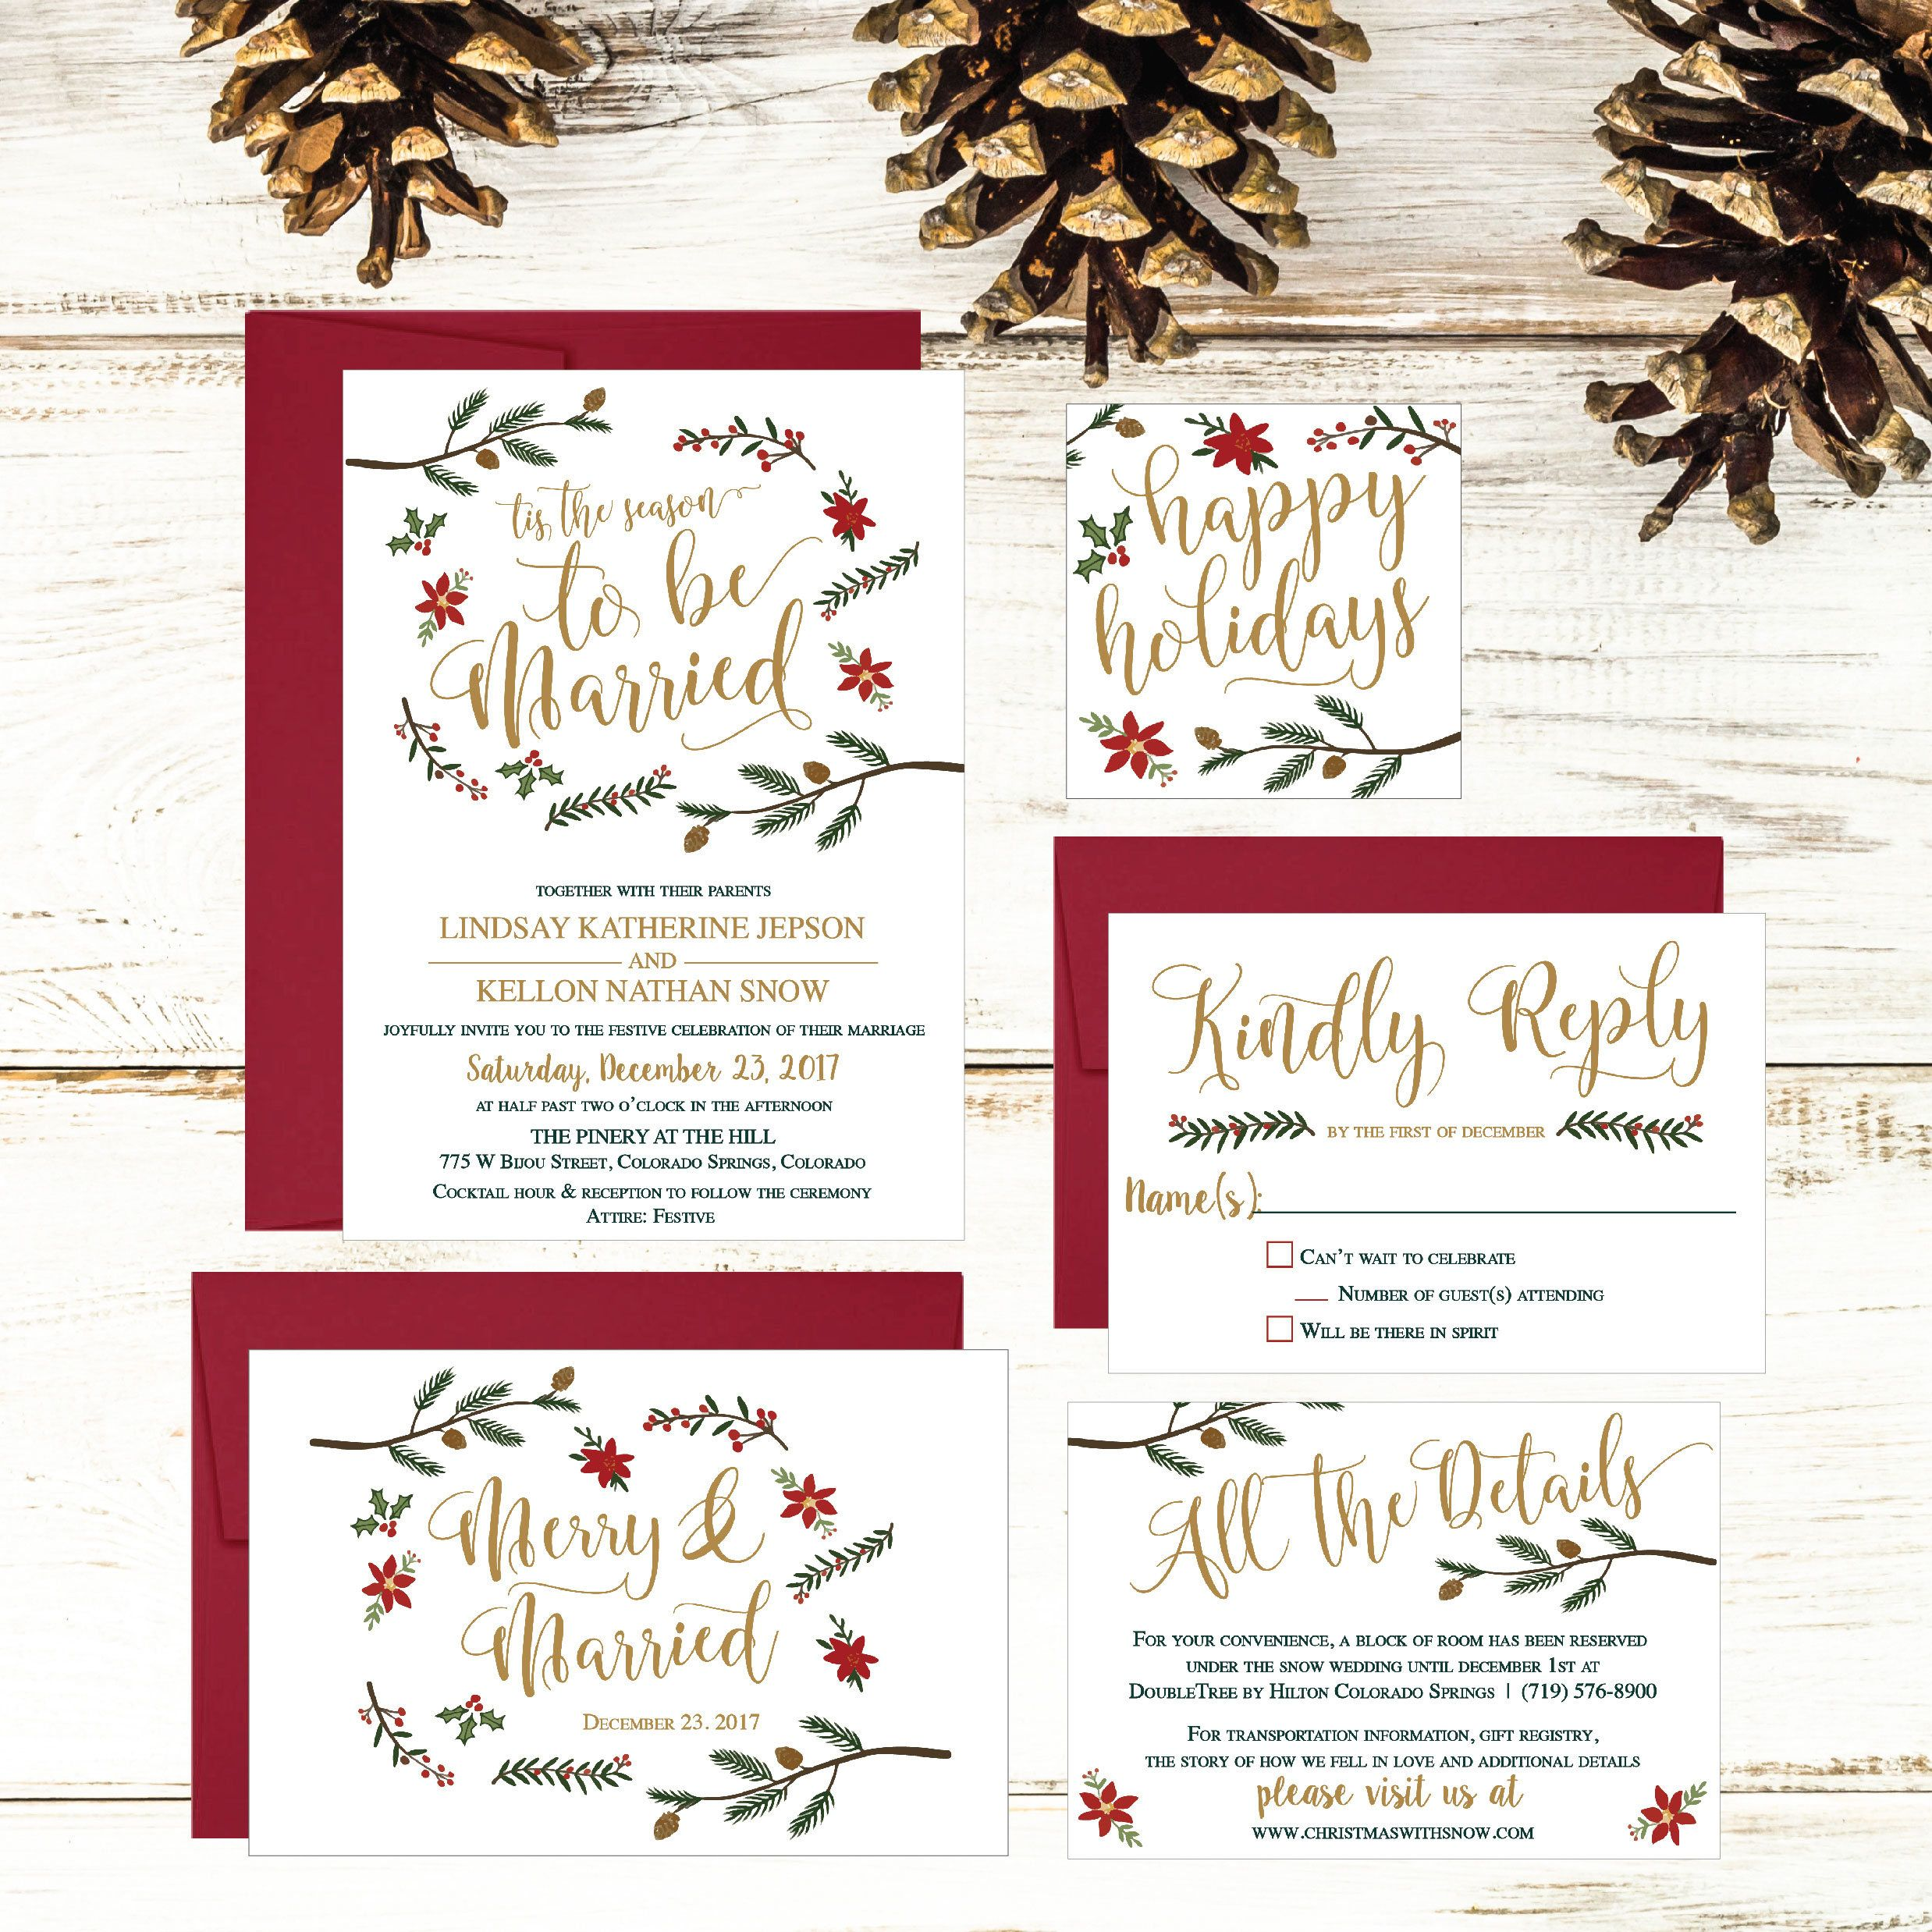 christmas wedding invitation holiday wedding invite christmas wedding stationery